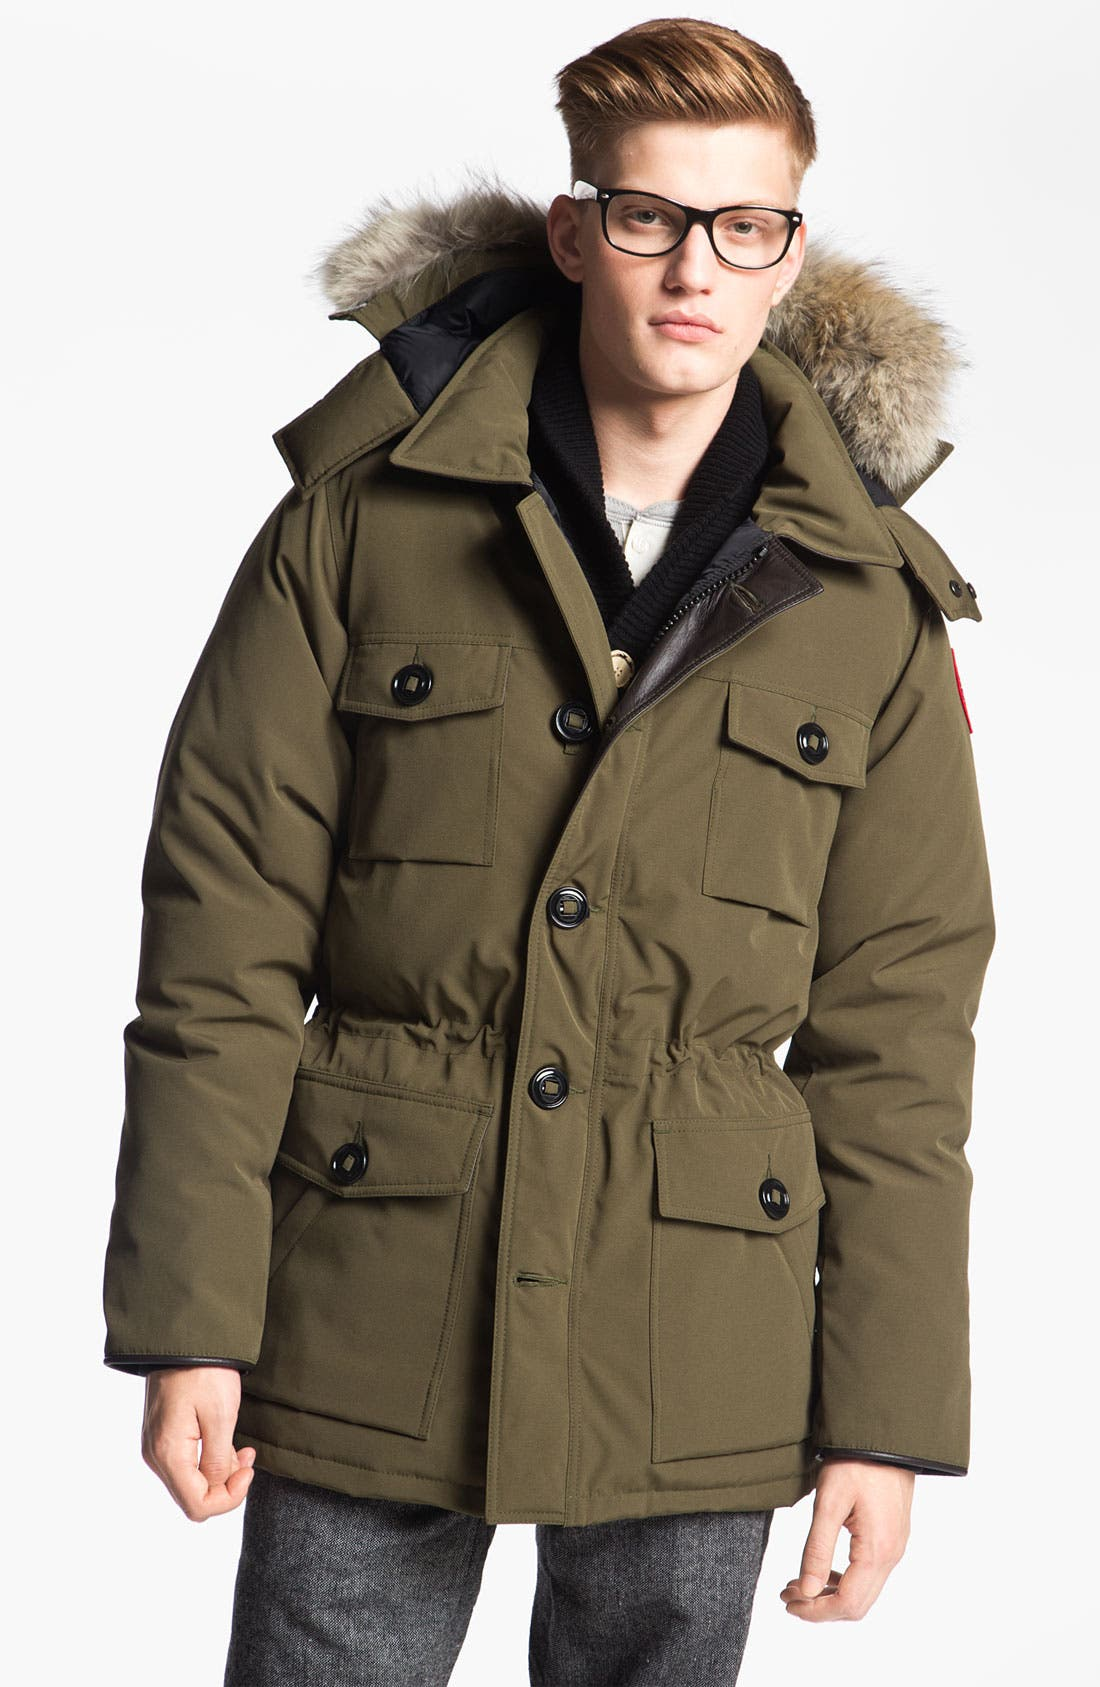 Canada Goose 'Banff' Slim Fit Parka with Genuine Coyote Fur Trim